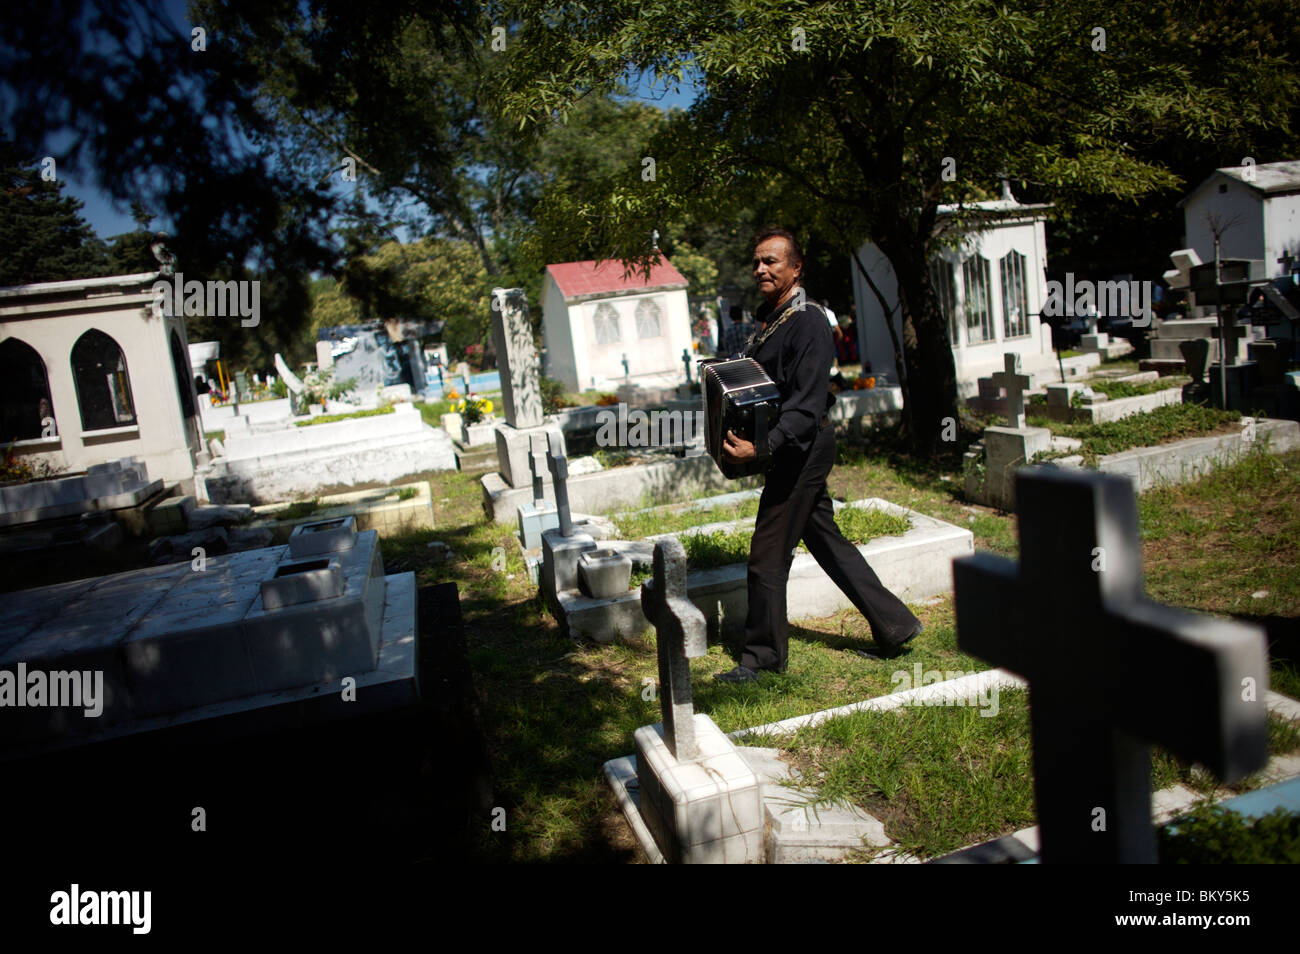 An accordion player waits for customers to hire him to play at grave sites in the Dolores cemetery in Mexico City. - Stock Image